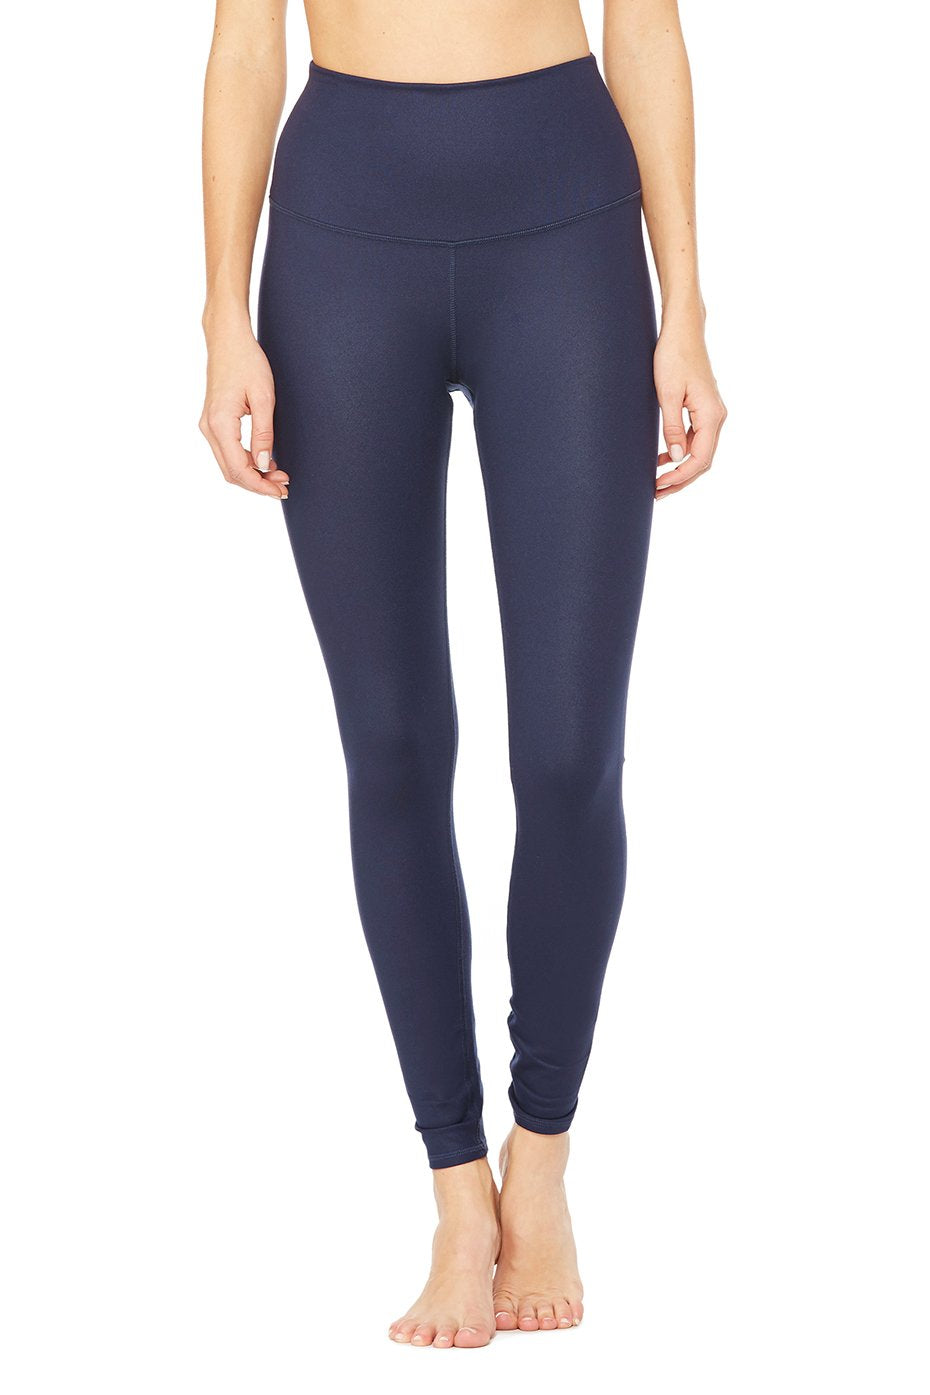 Alo High Waisted Airbrush Legging